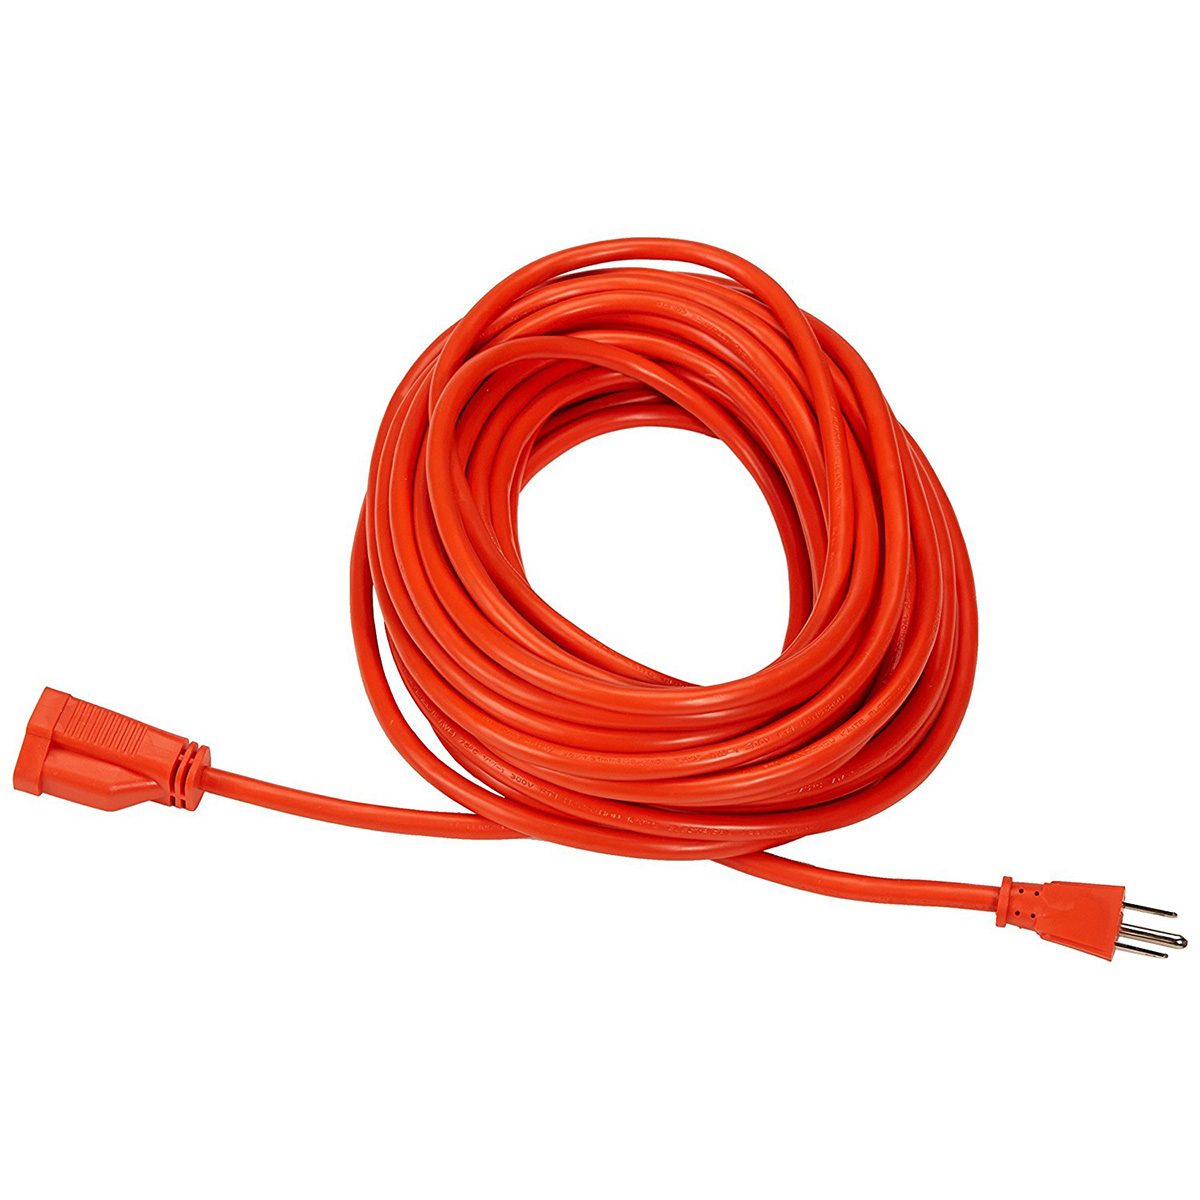 How To Repair A Cut Extension Cord The Family Handyman Rv Electric Jack Wiring